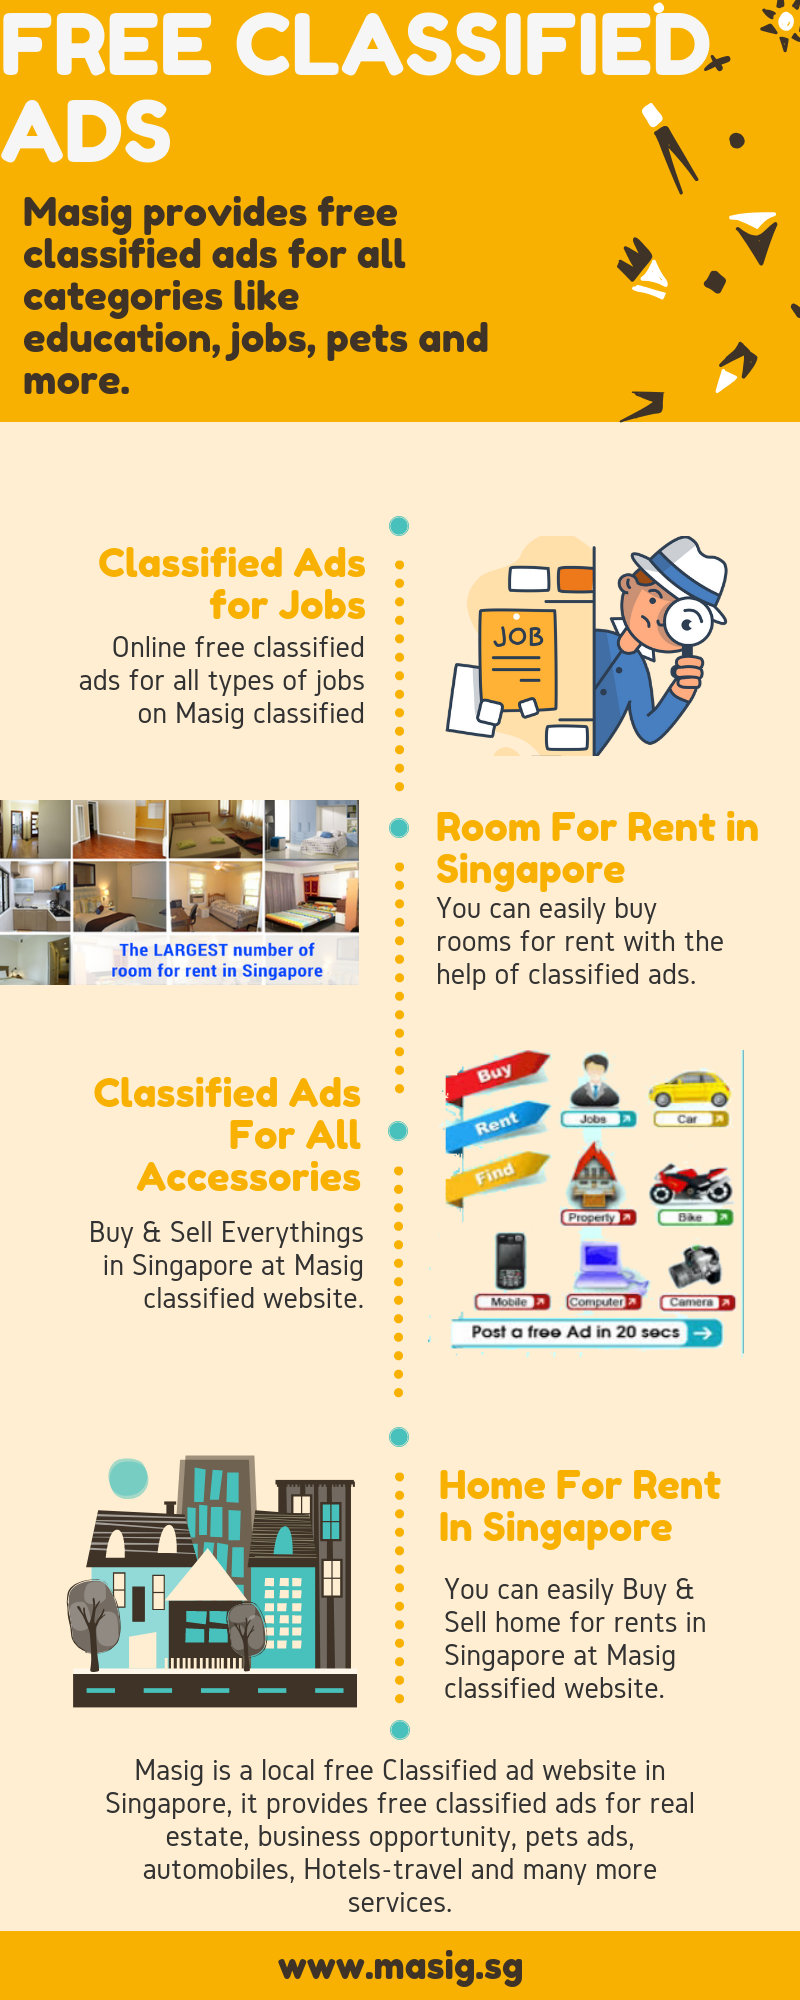 post online freeclassified ads in singapore through masig classified website in singapore and